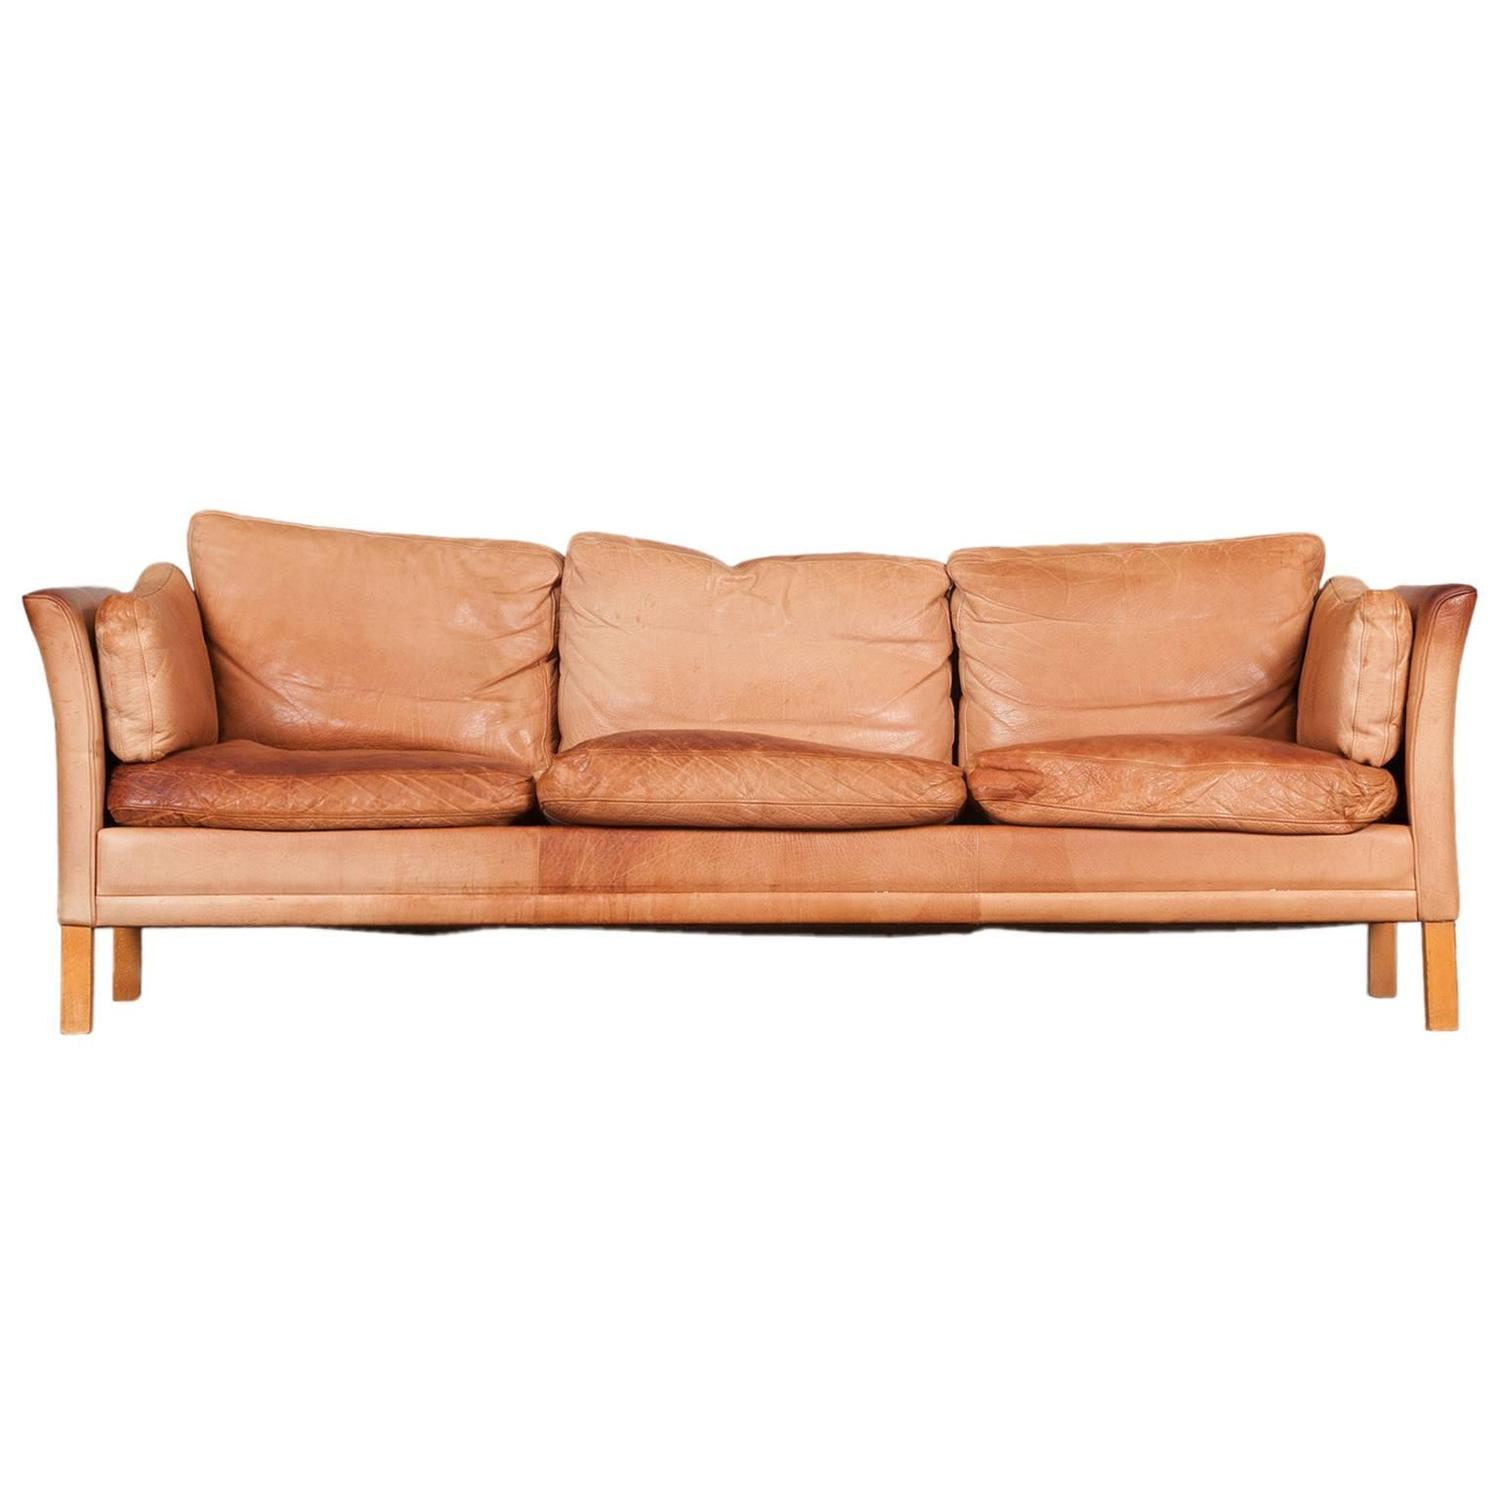 Danish Three Seater Sofa With Light Tan Leather 1960s At 1stdibs